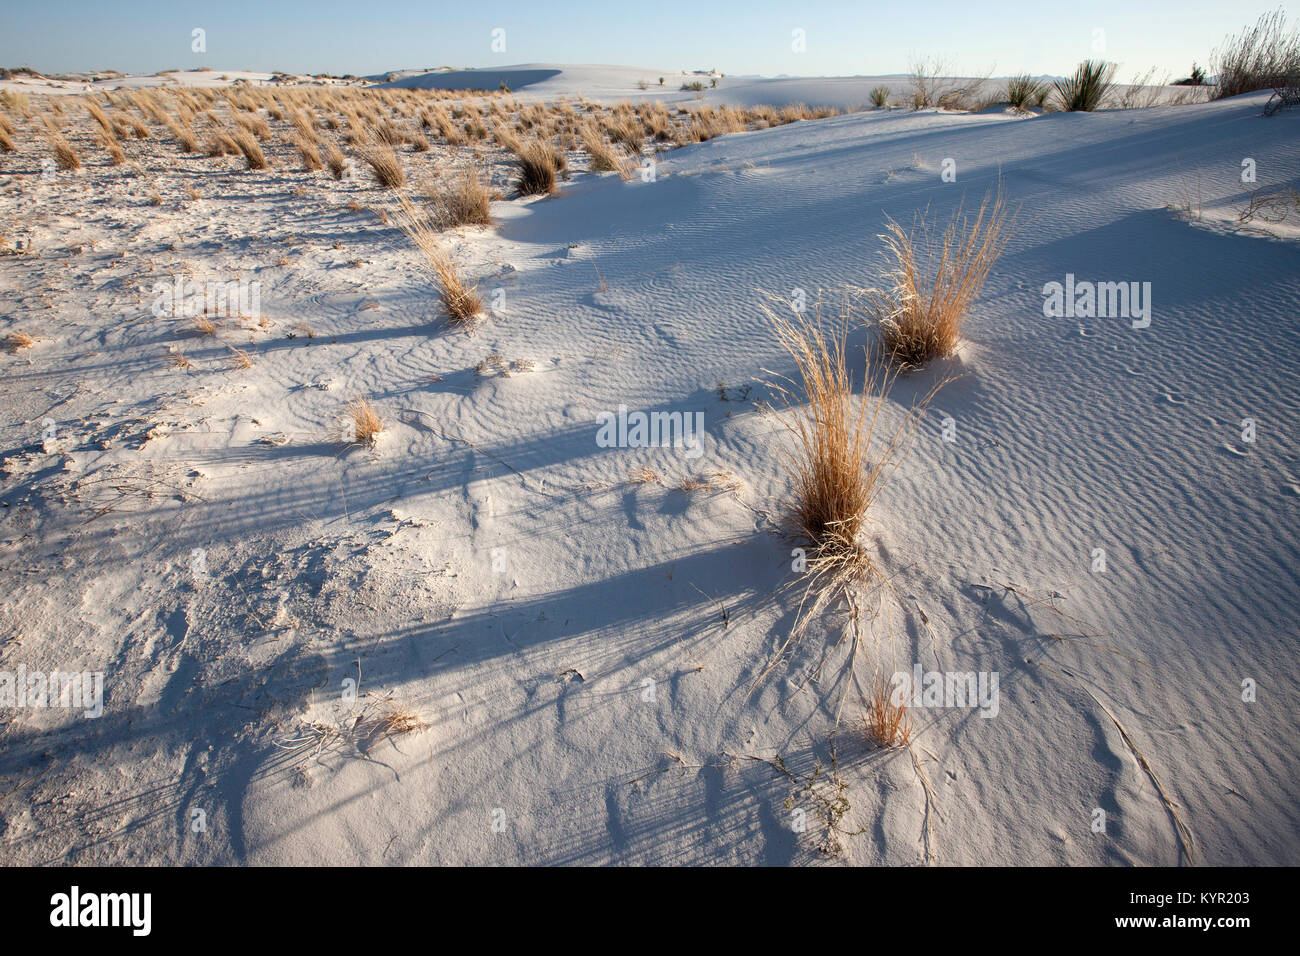 Sand and seasonal grasses lay in wait for summer rains, White Sands National Monument, New Mexico - Stock Image